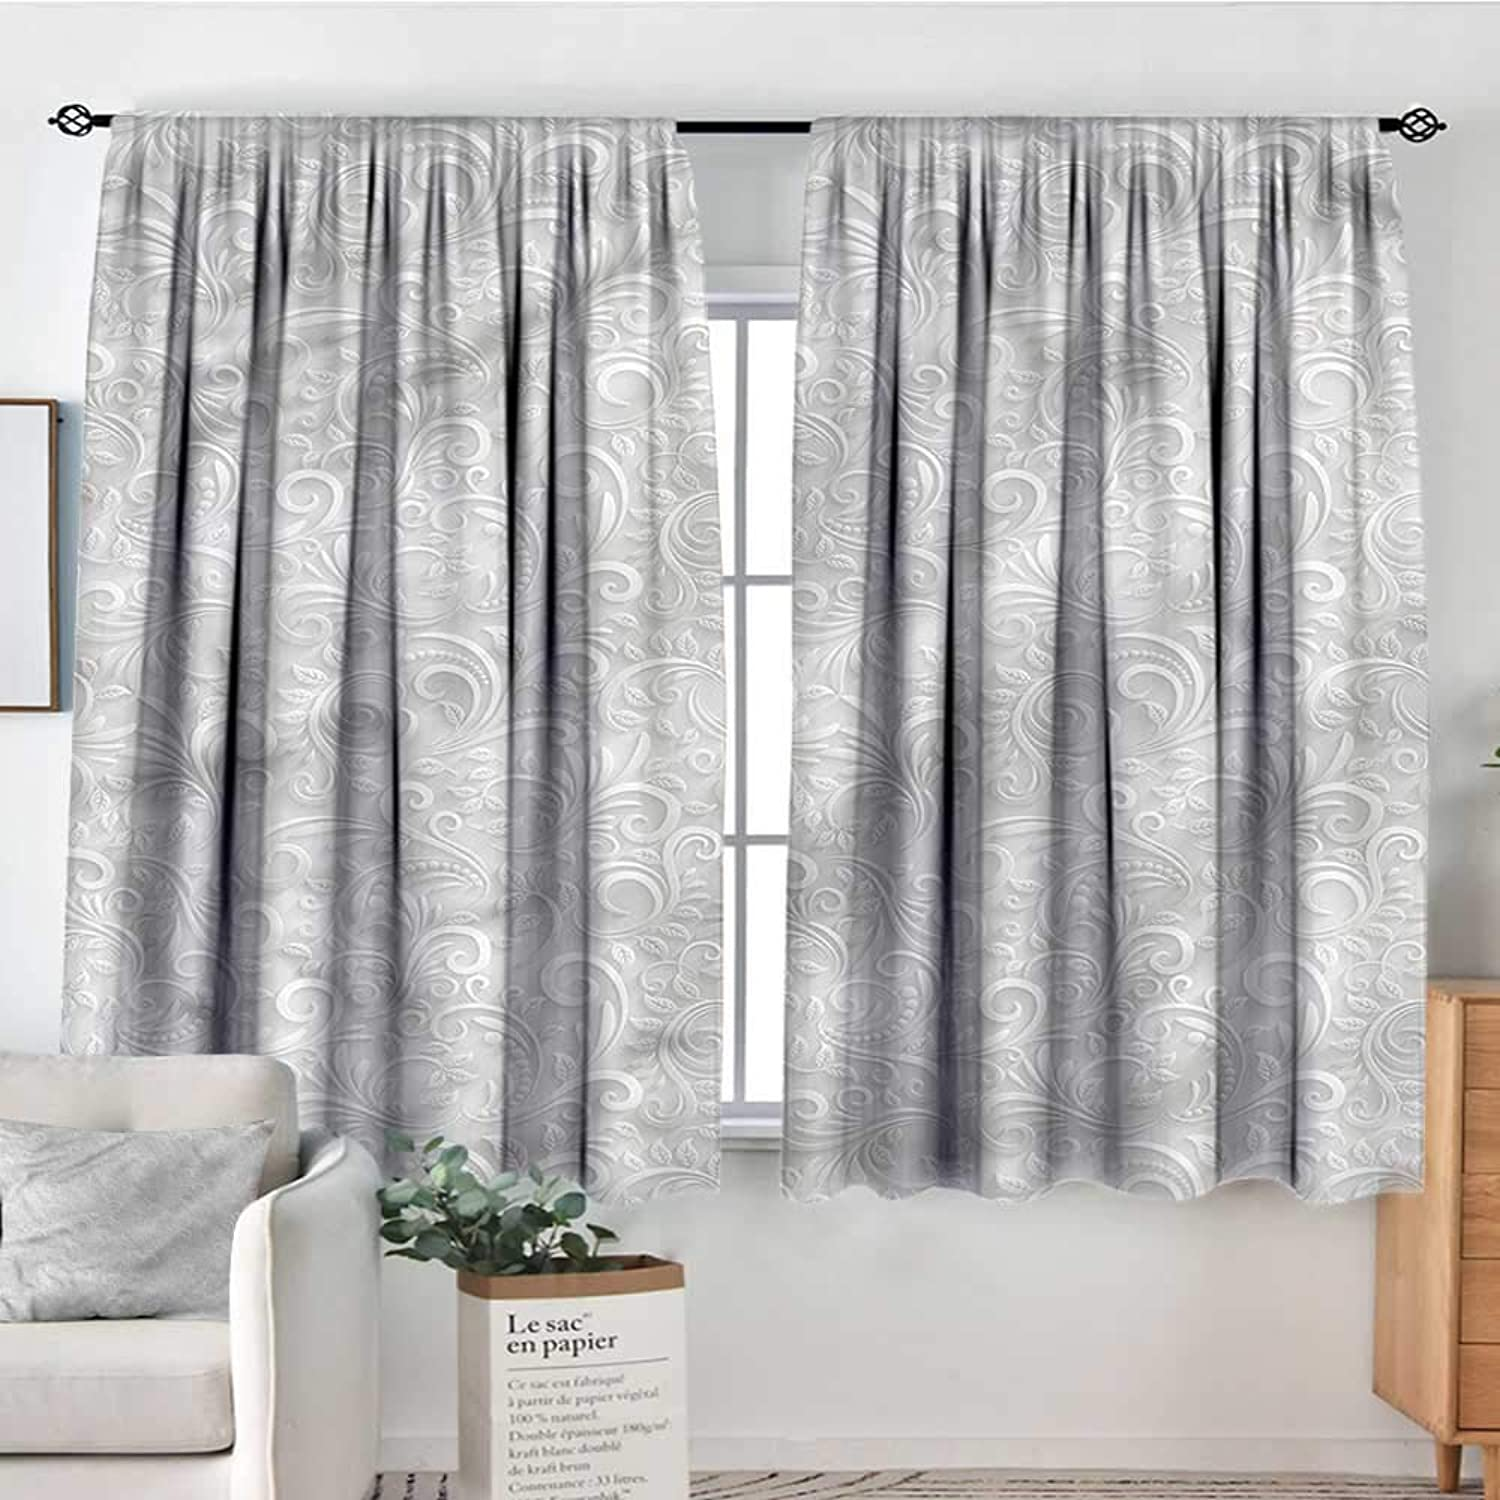 Sanring Grey,Indo Panes Drapes Curly Retro Floral Design 42 X72  Kids Backout Curtains for Bedroom